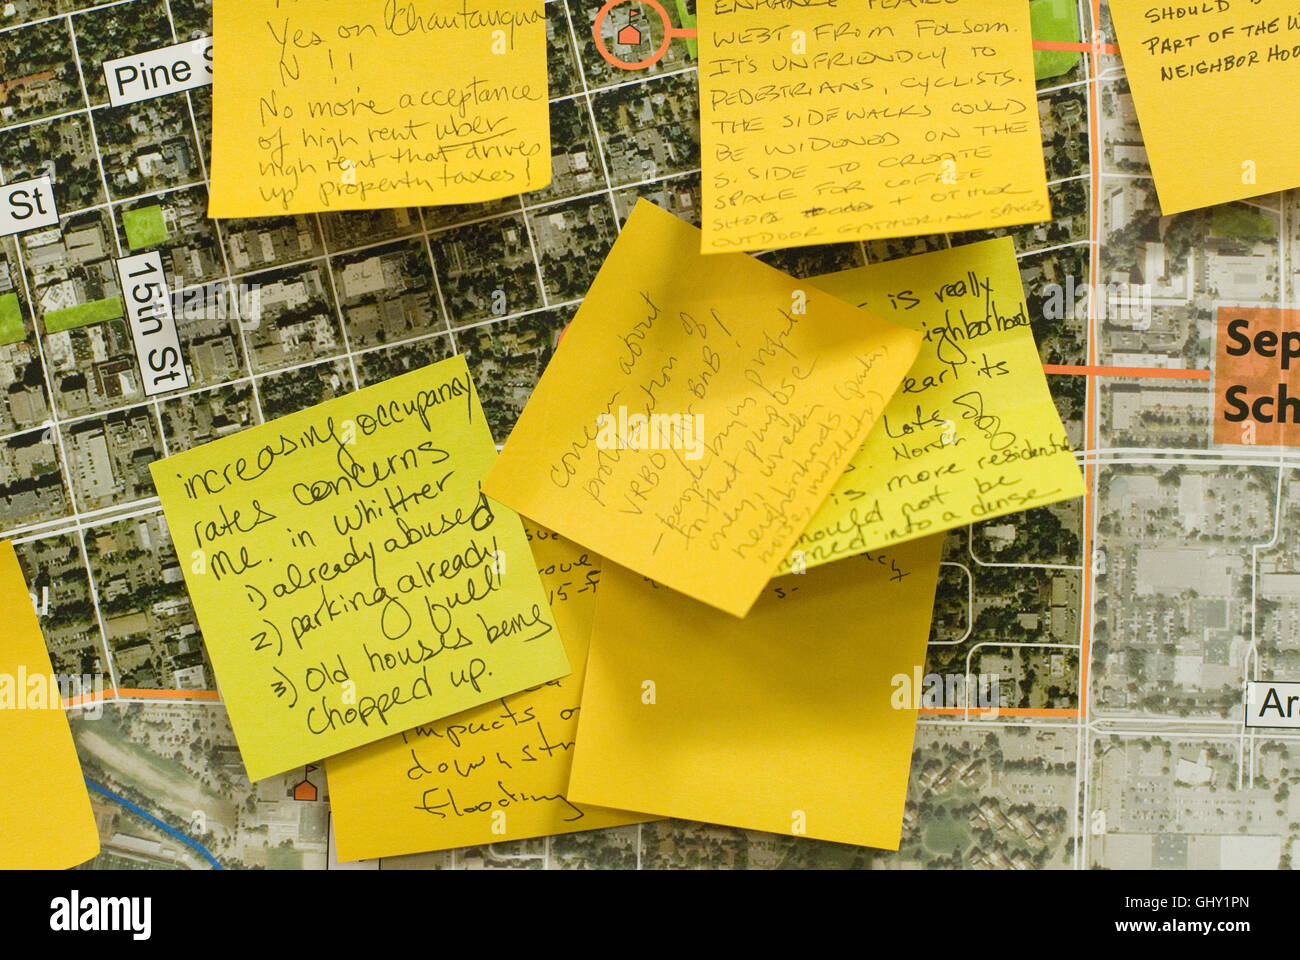 During public meetings, Boulder often asks residents to express their feelings about issues on sticky notes. - Stock Image